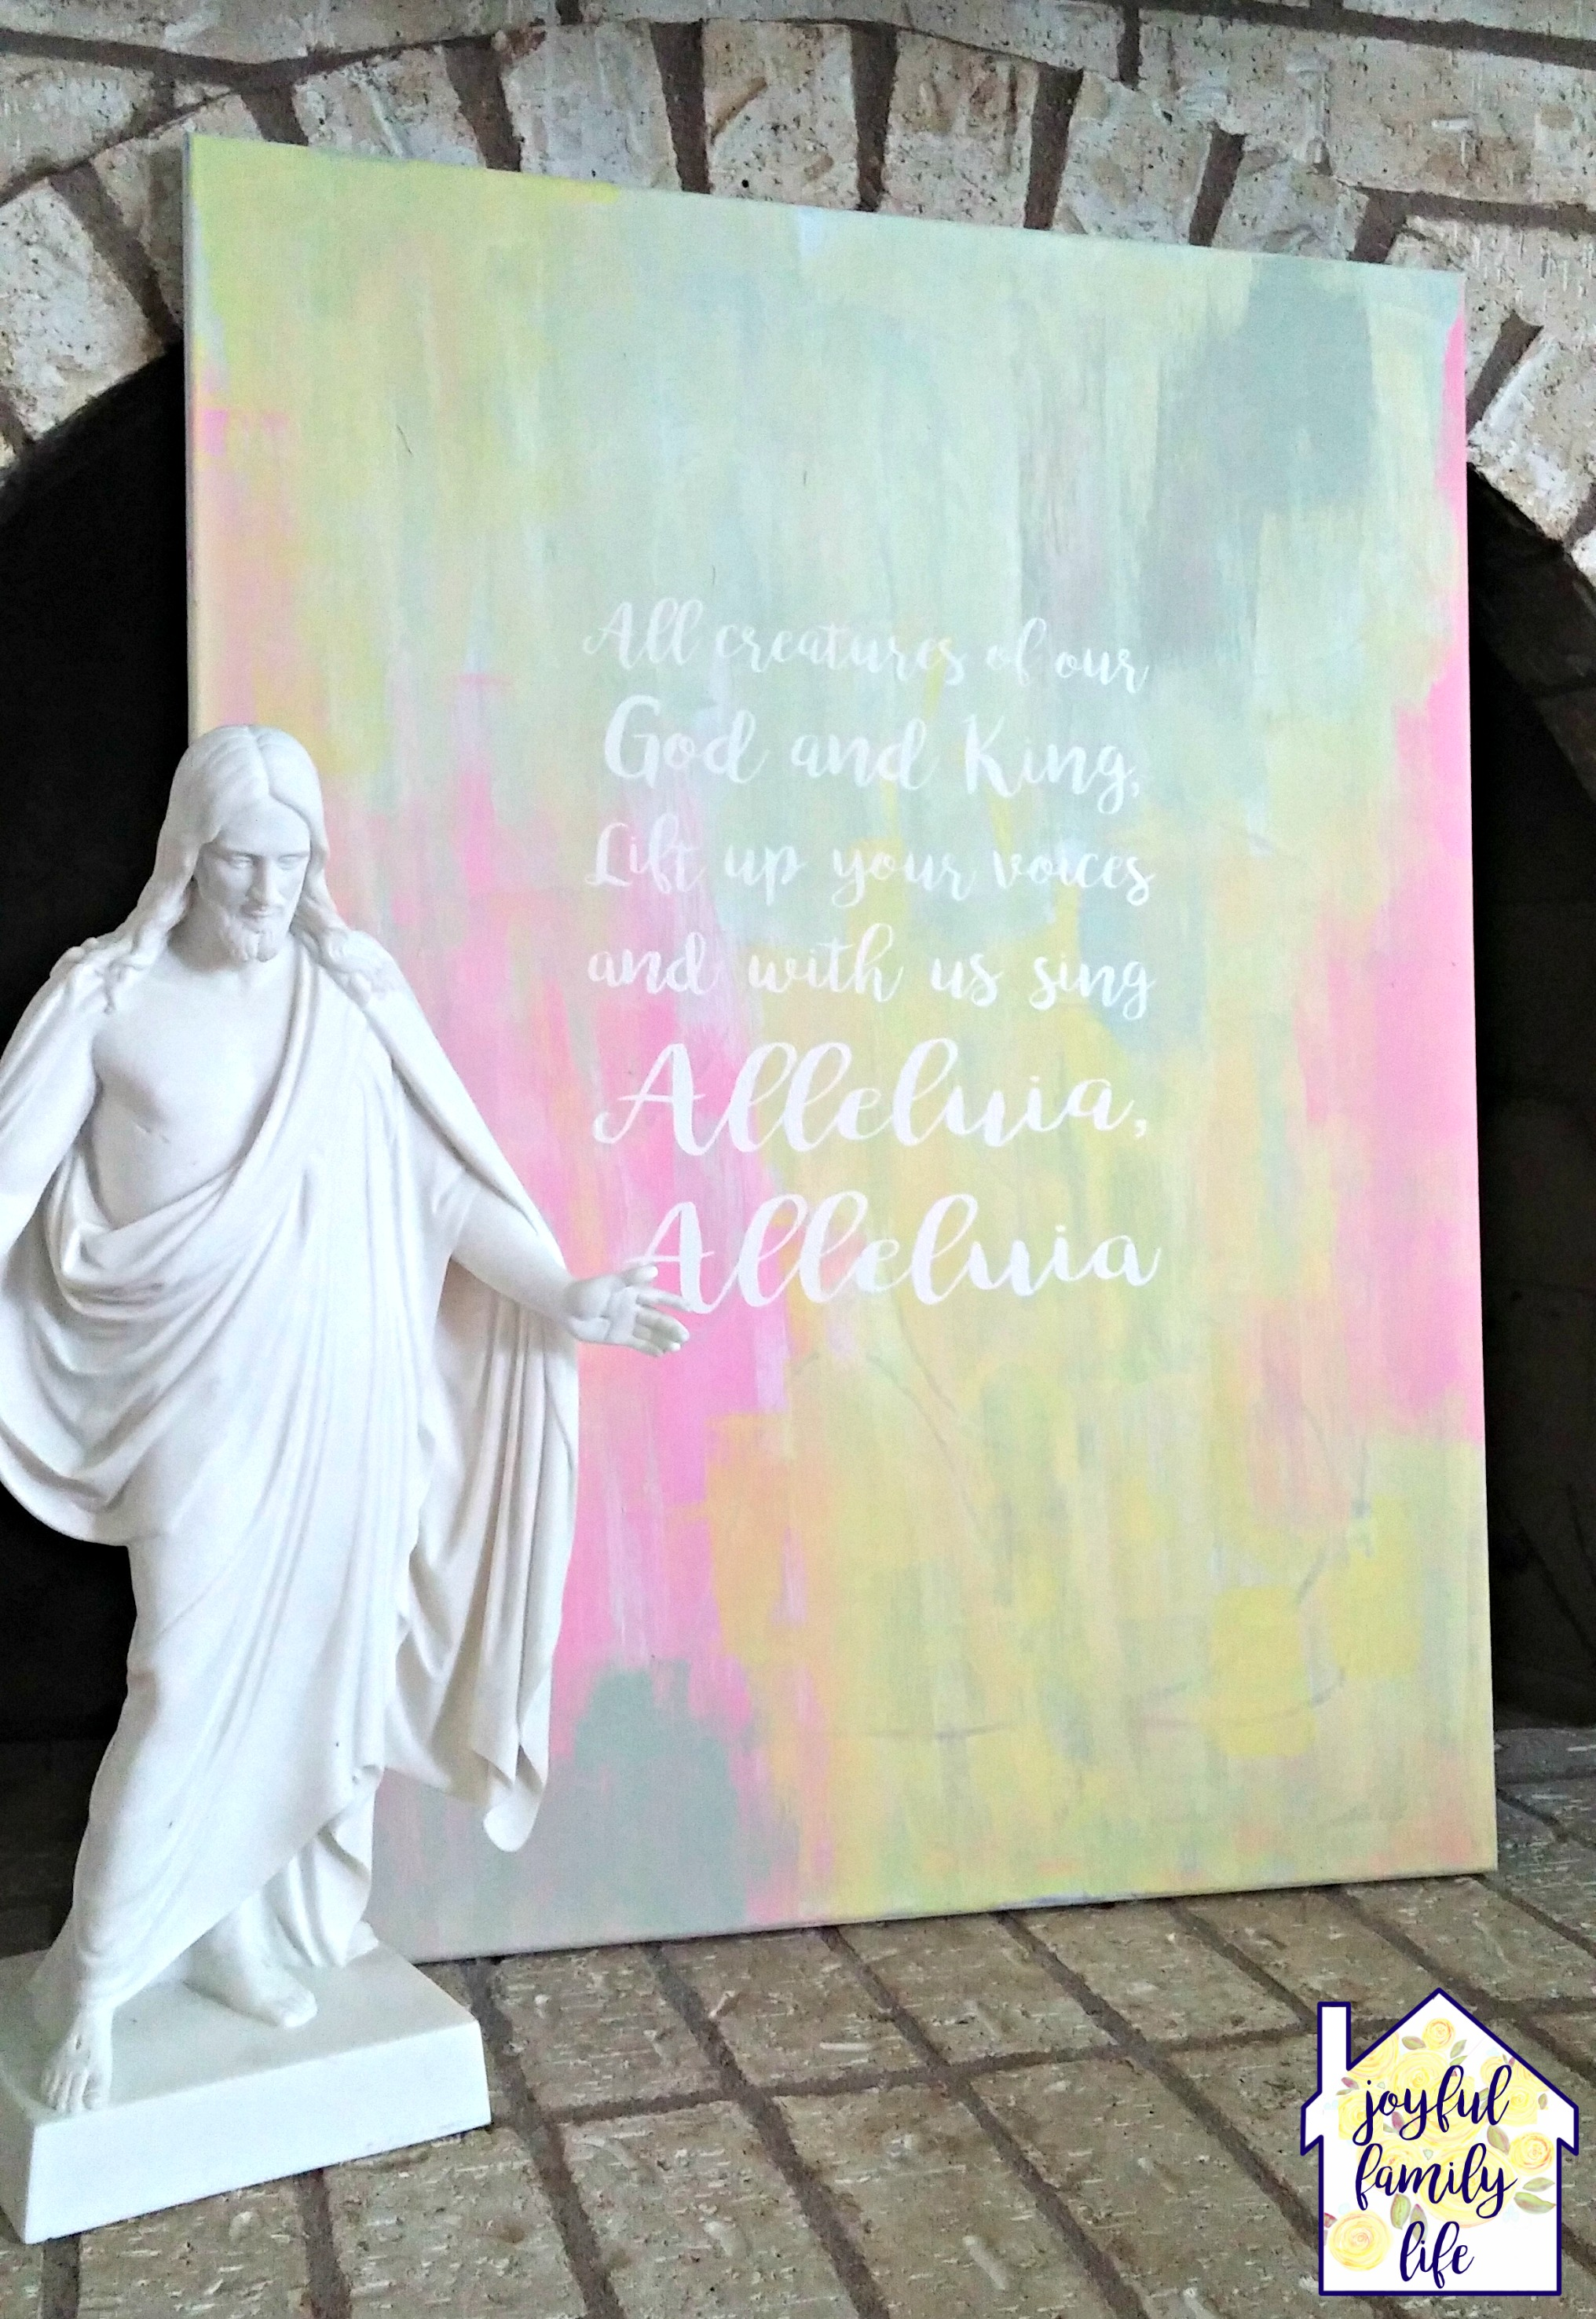 Alleluia – It's an Easter Giveaway